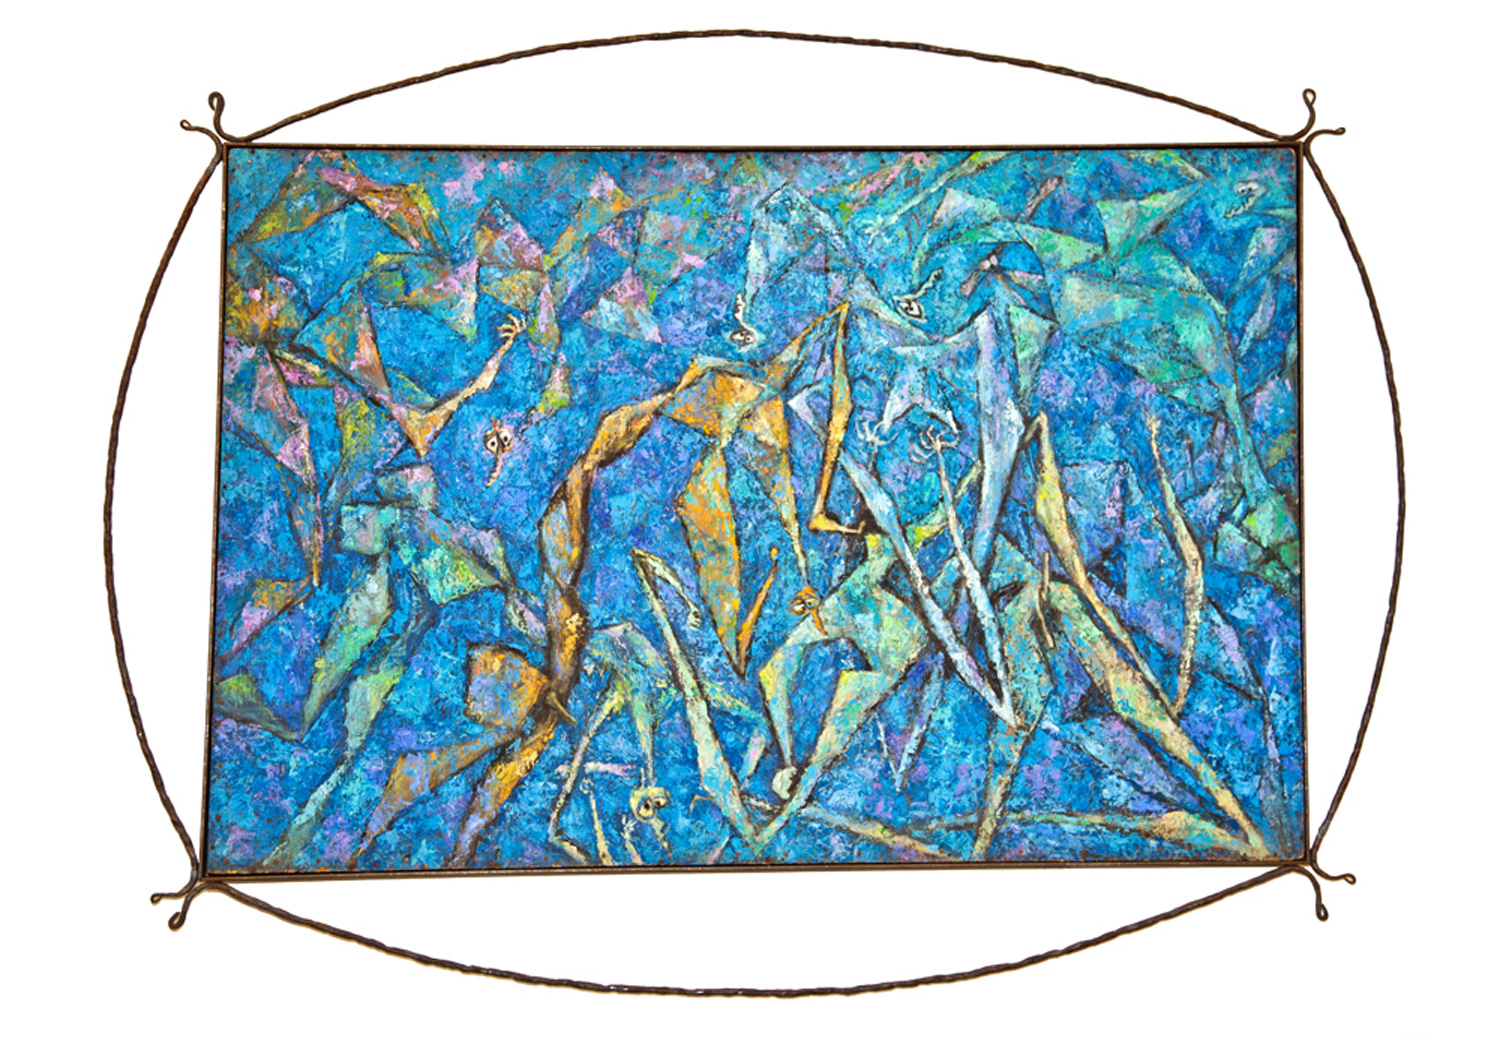 """One of the oil paintings on display at the Susanne Wenger Foundation: """"IfáPietà deep blue"""", 1982-1984, 90 x 124 cm, oil on wood.©Wolfgang Denk"""